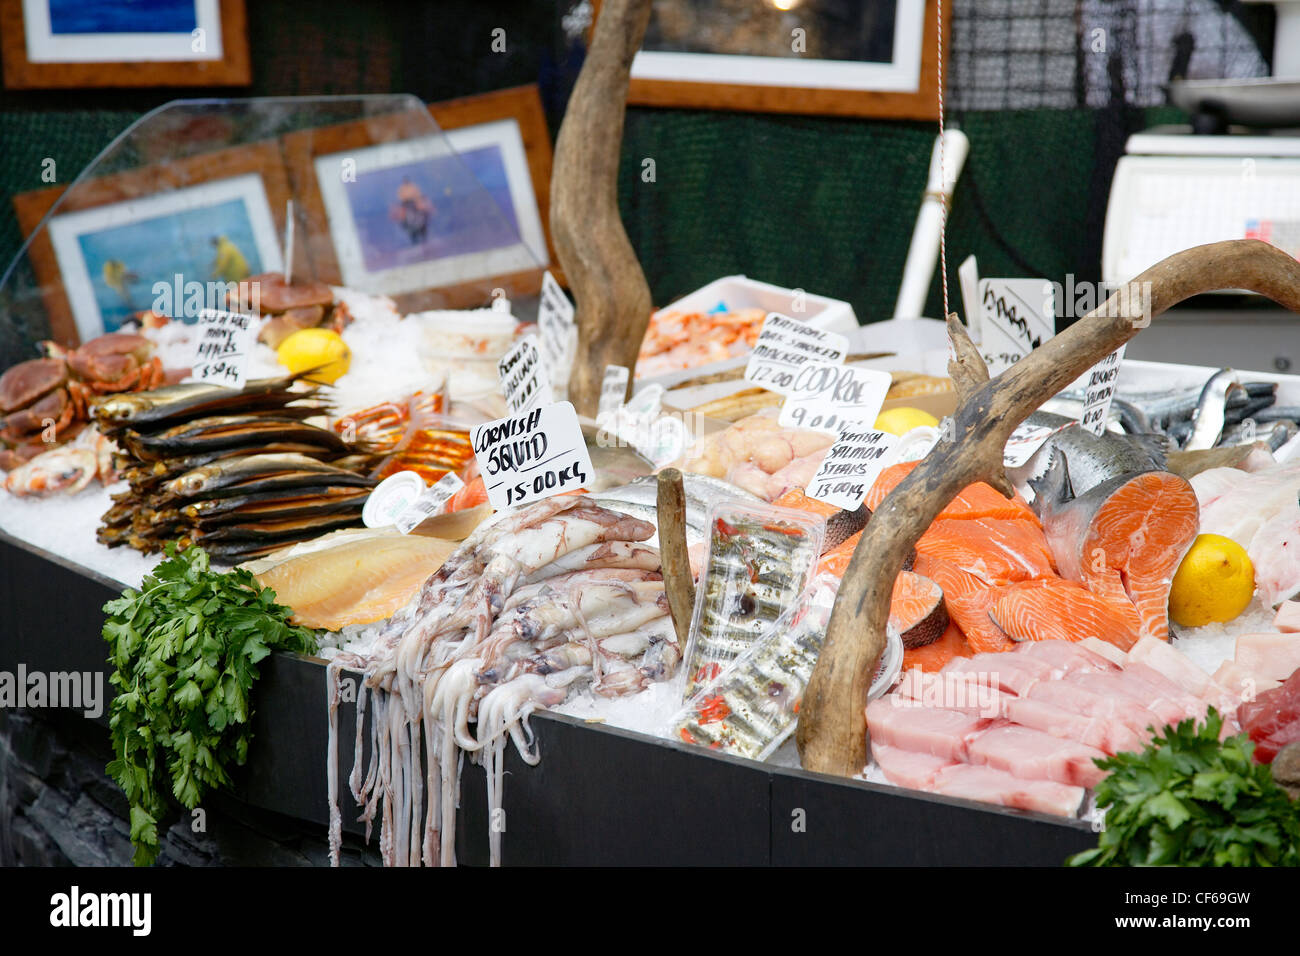 A detailed view of a fish counter at Borough Market. - Stock Image